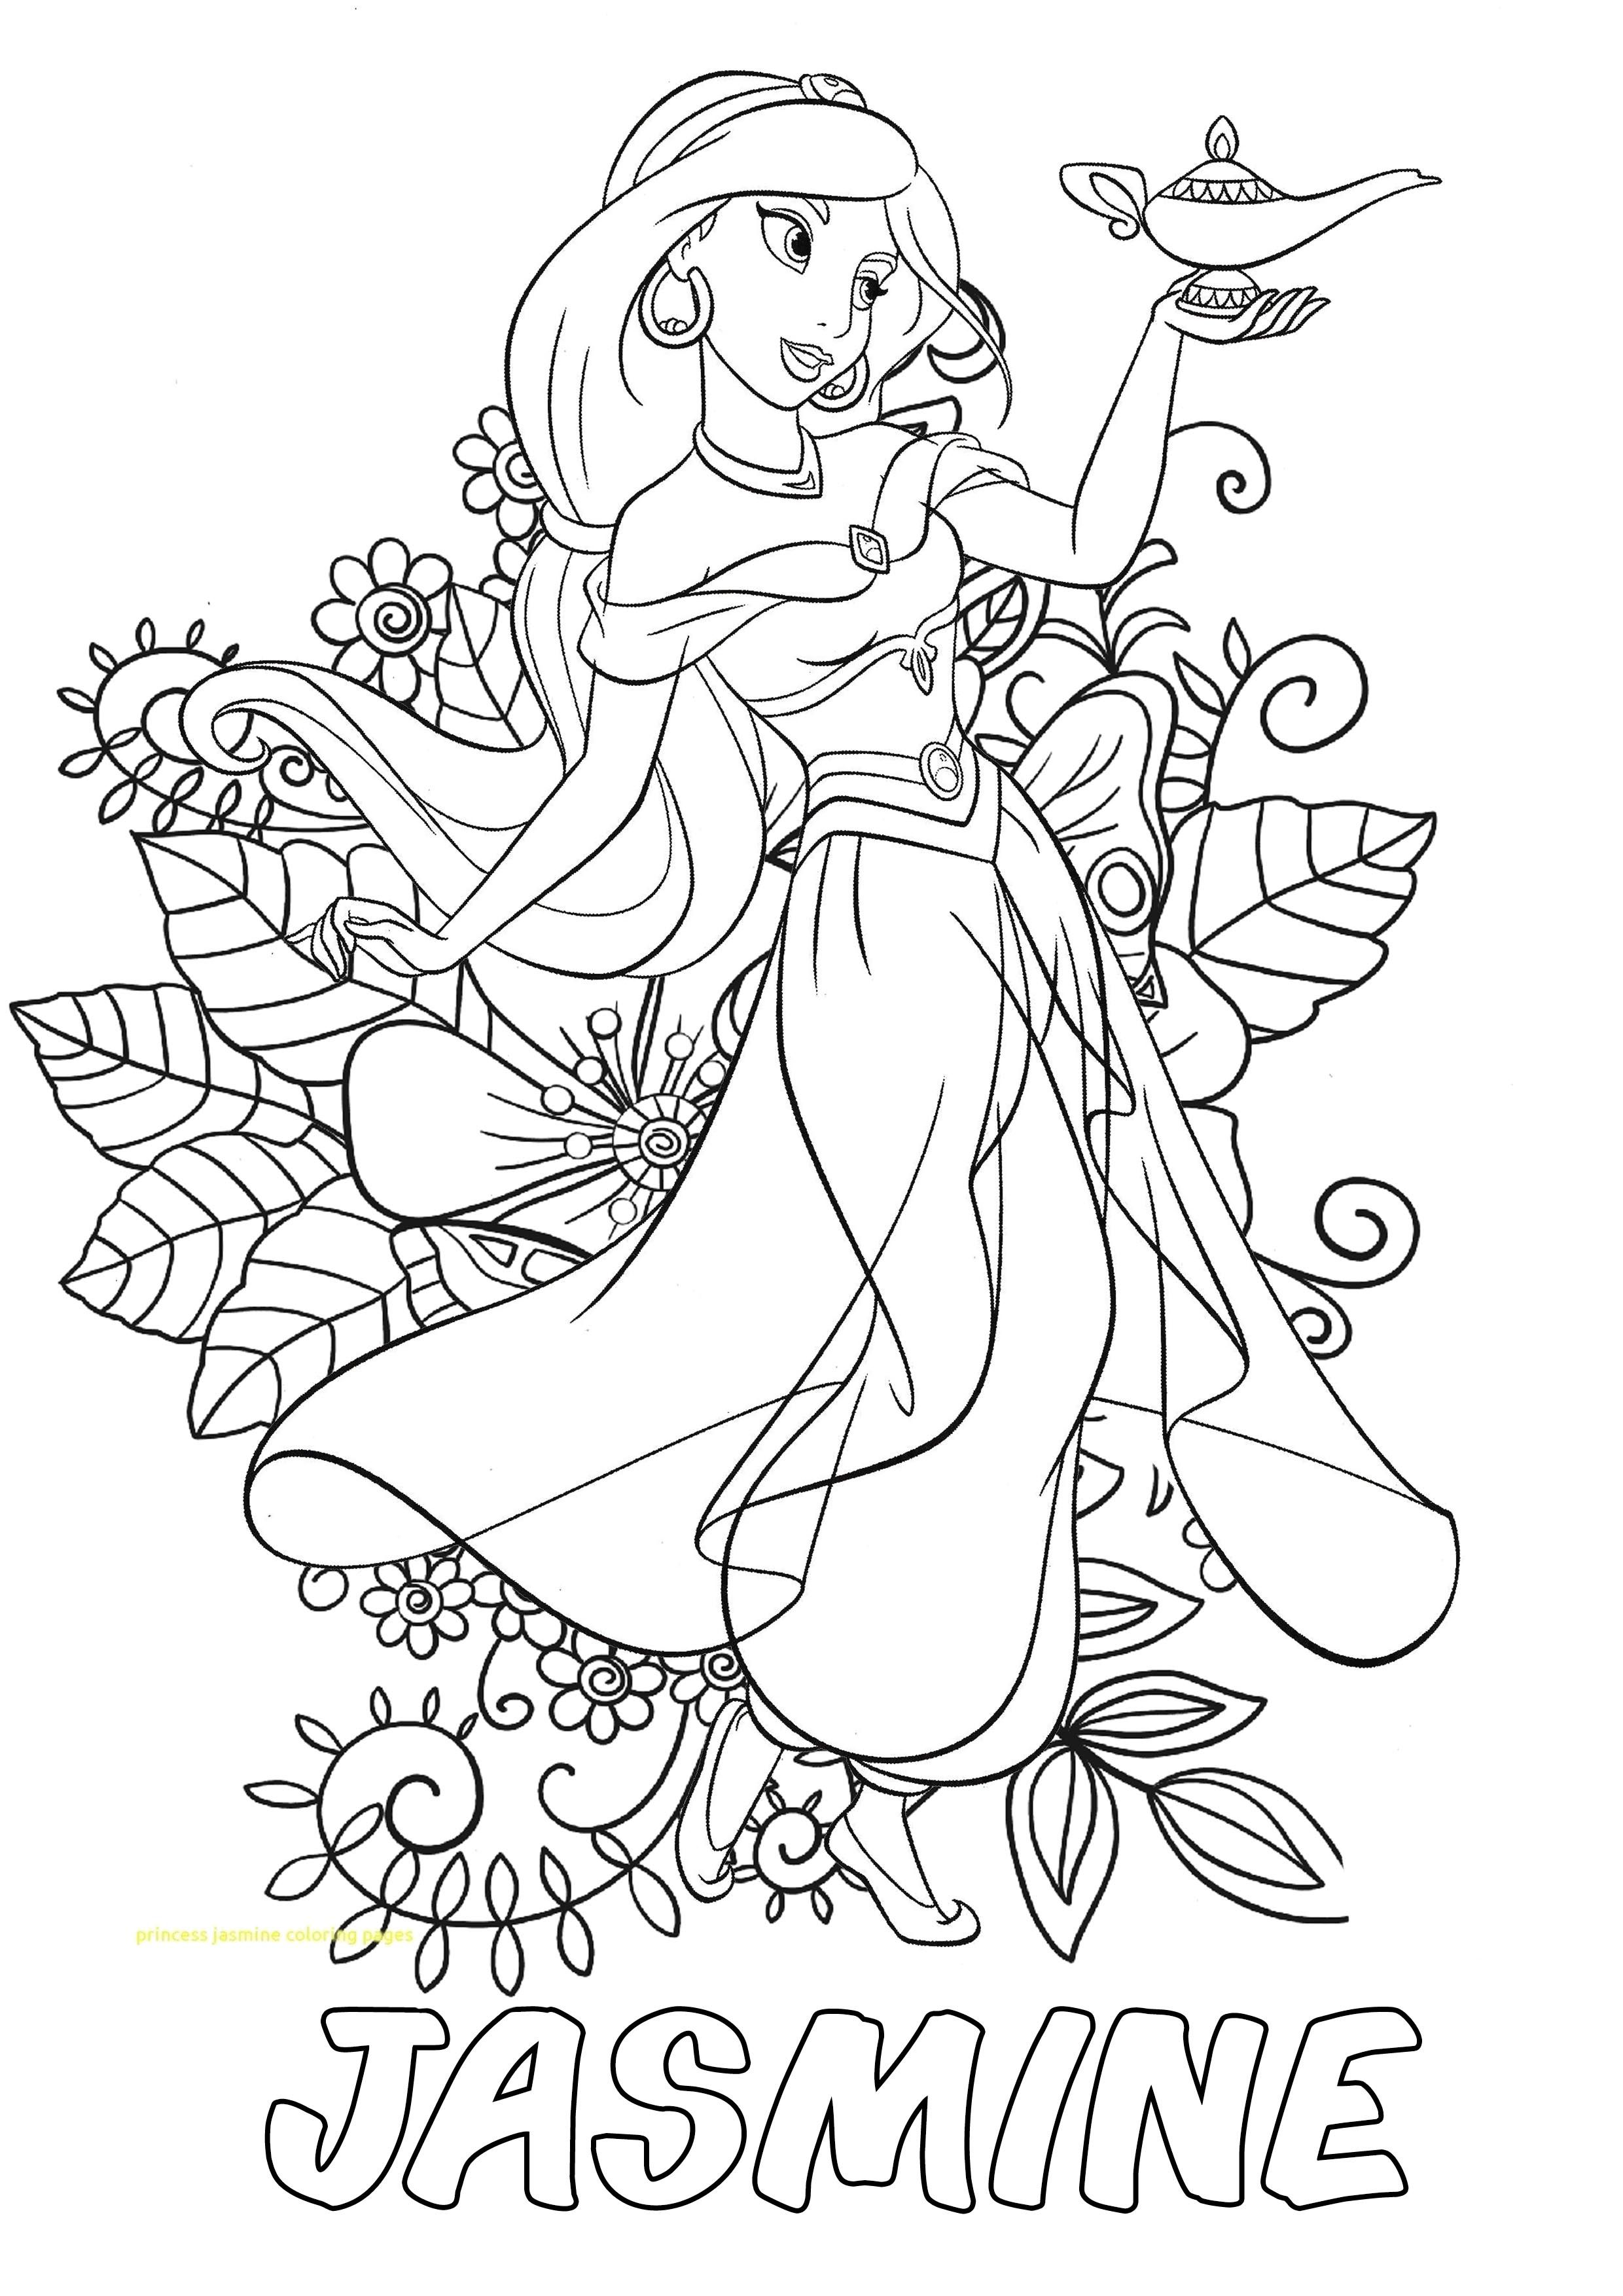 Hello Kids This Is A Beautifull Jasmine With Flower Background To You Don T Forg Disney Coloring Pages Princess Coloring Pages Disney Princess Coloring Pages